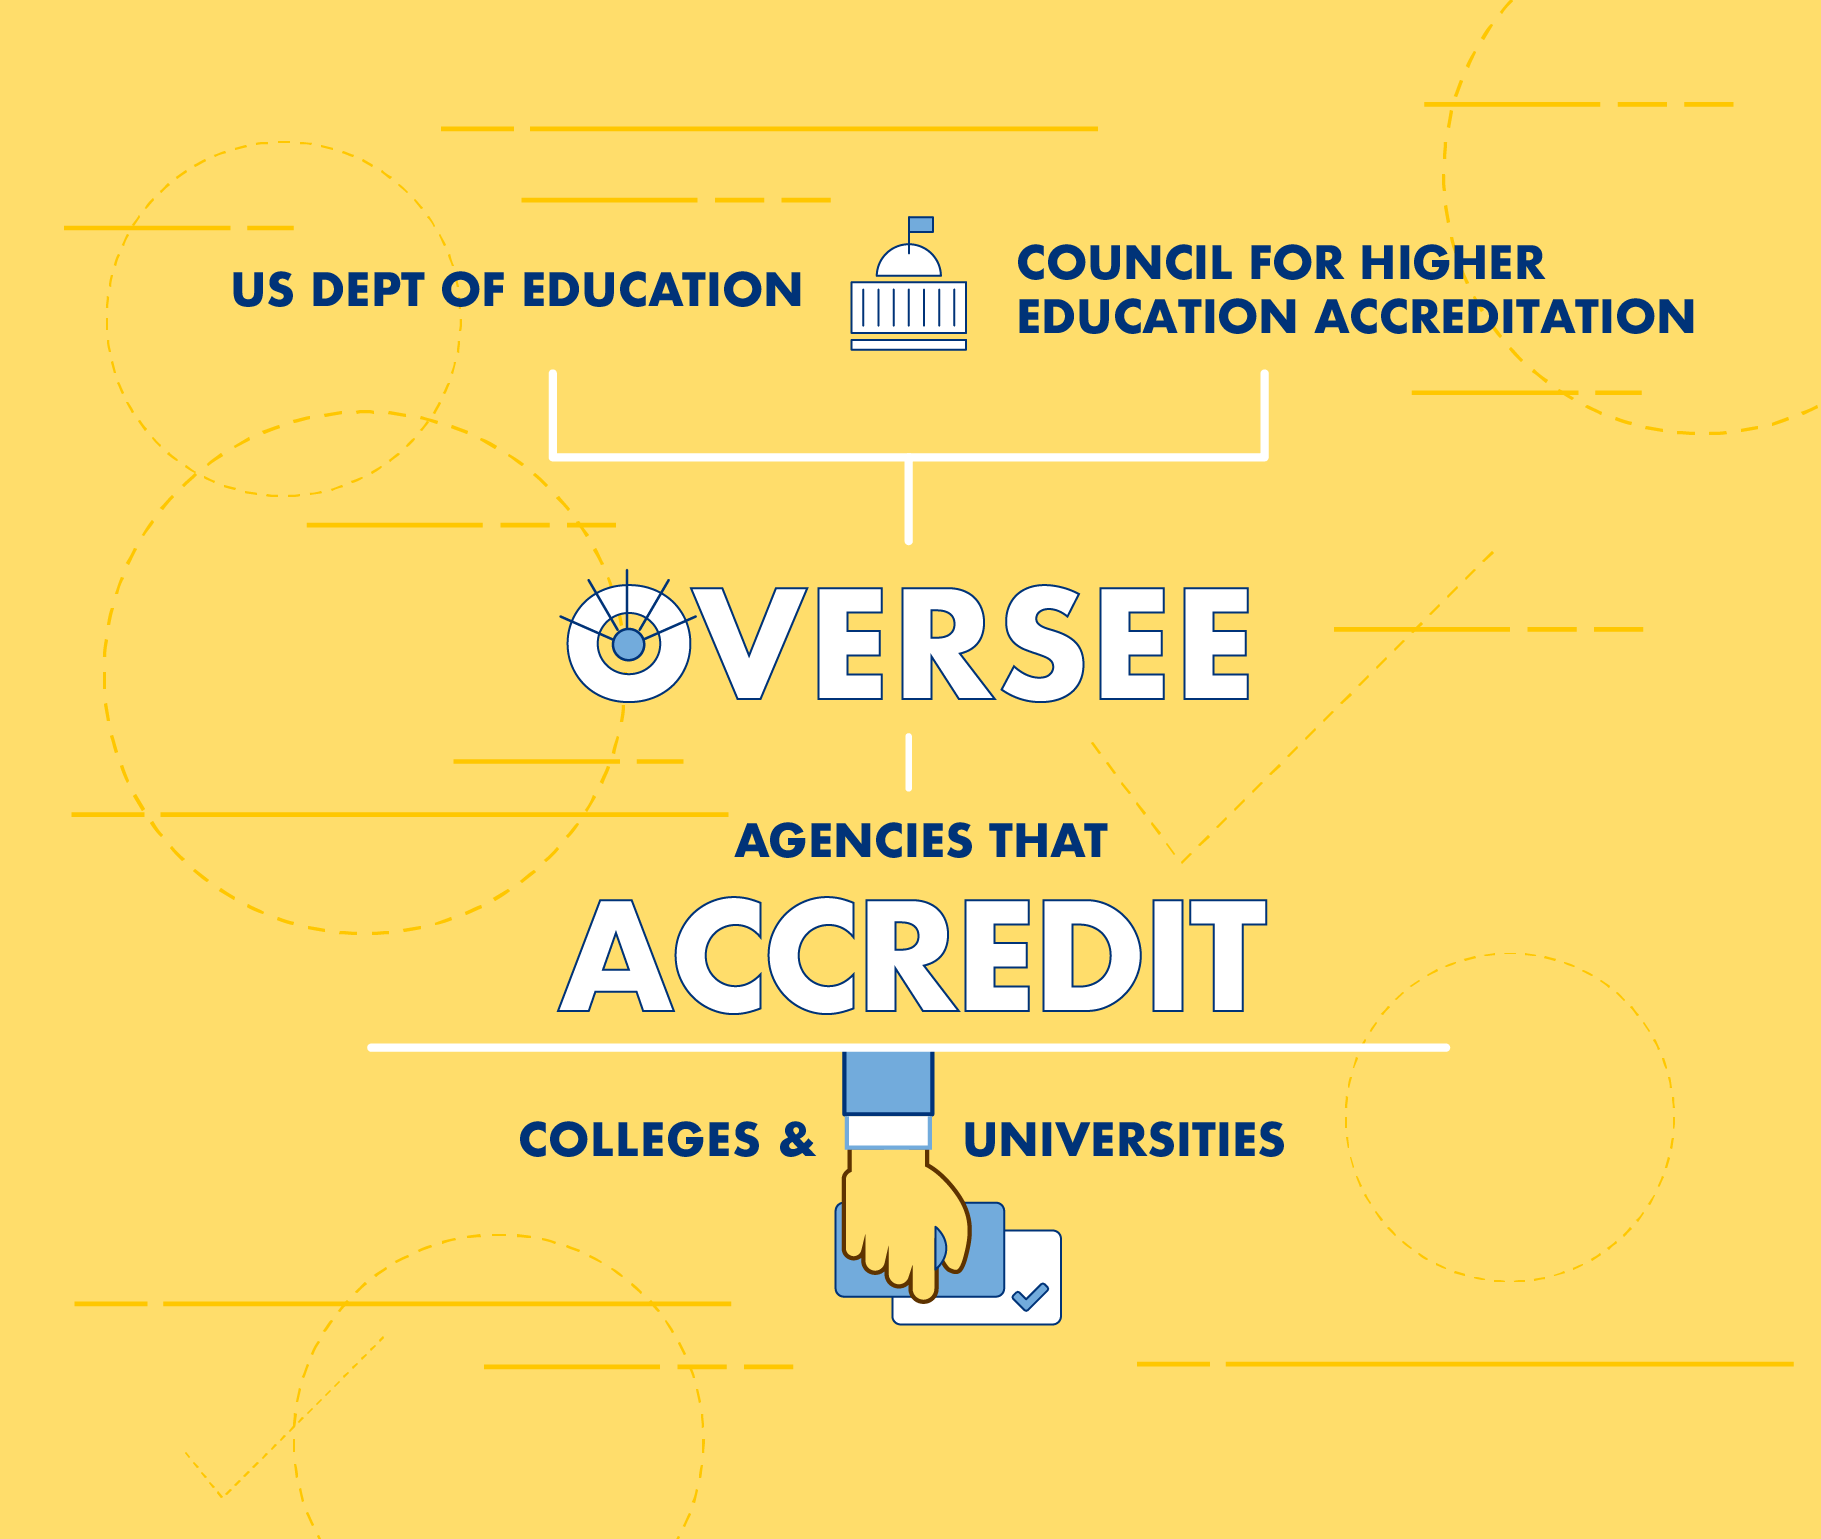 How are colleges accredited?